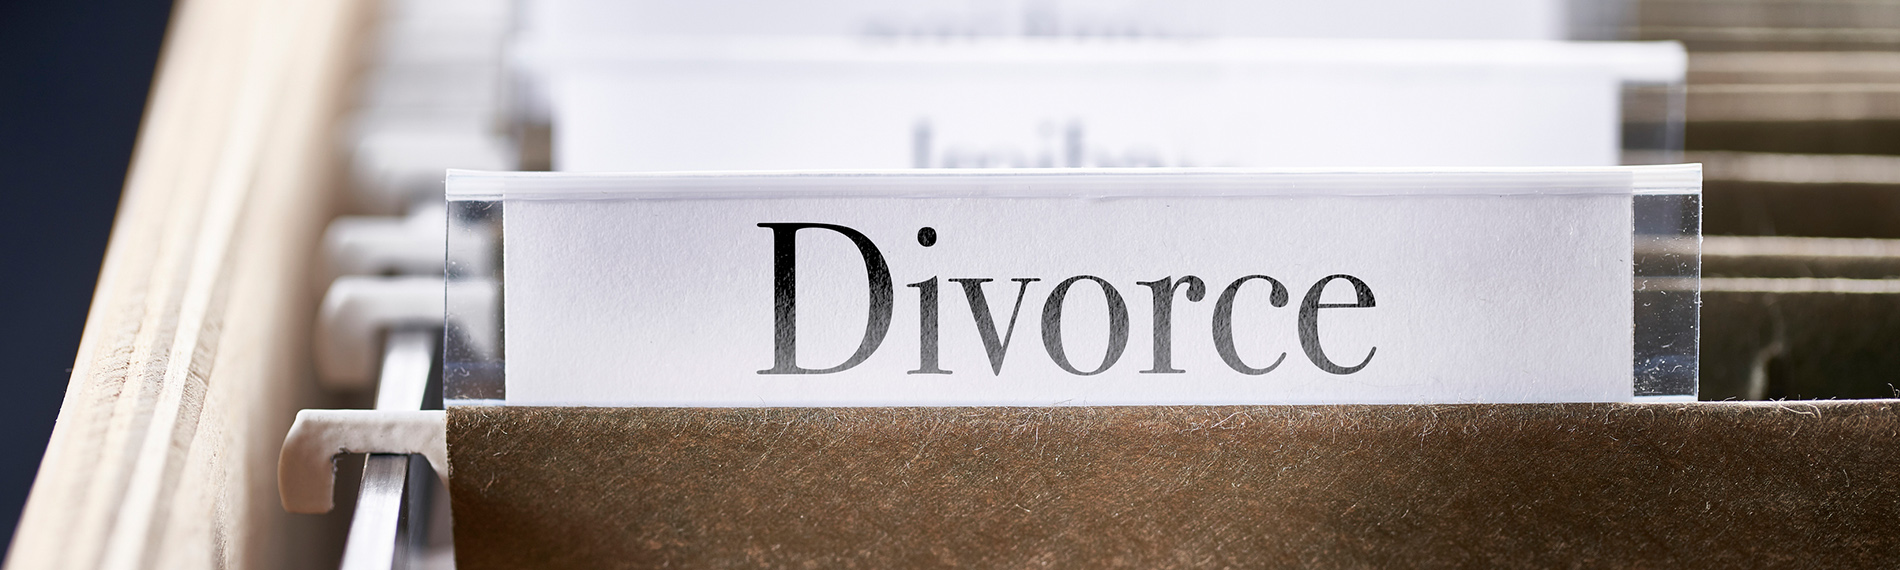 Divorce file